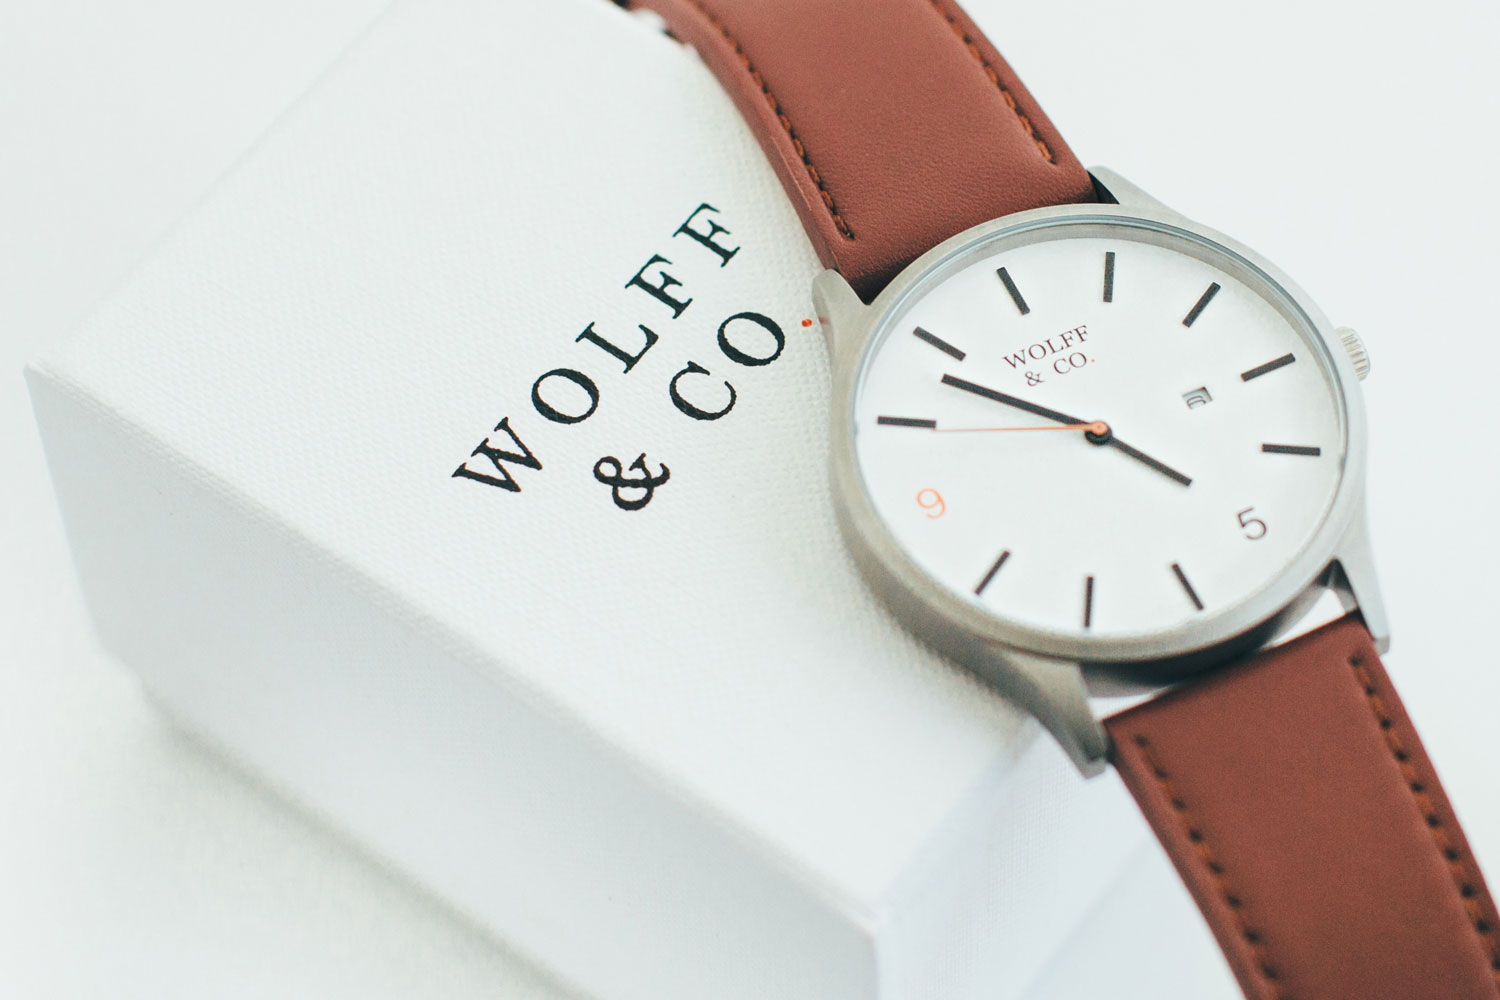 Wolff & Co